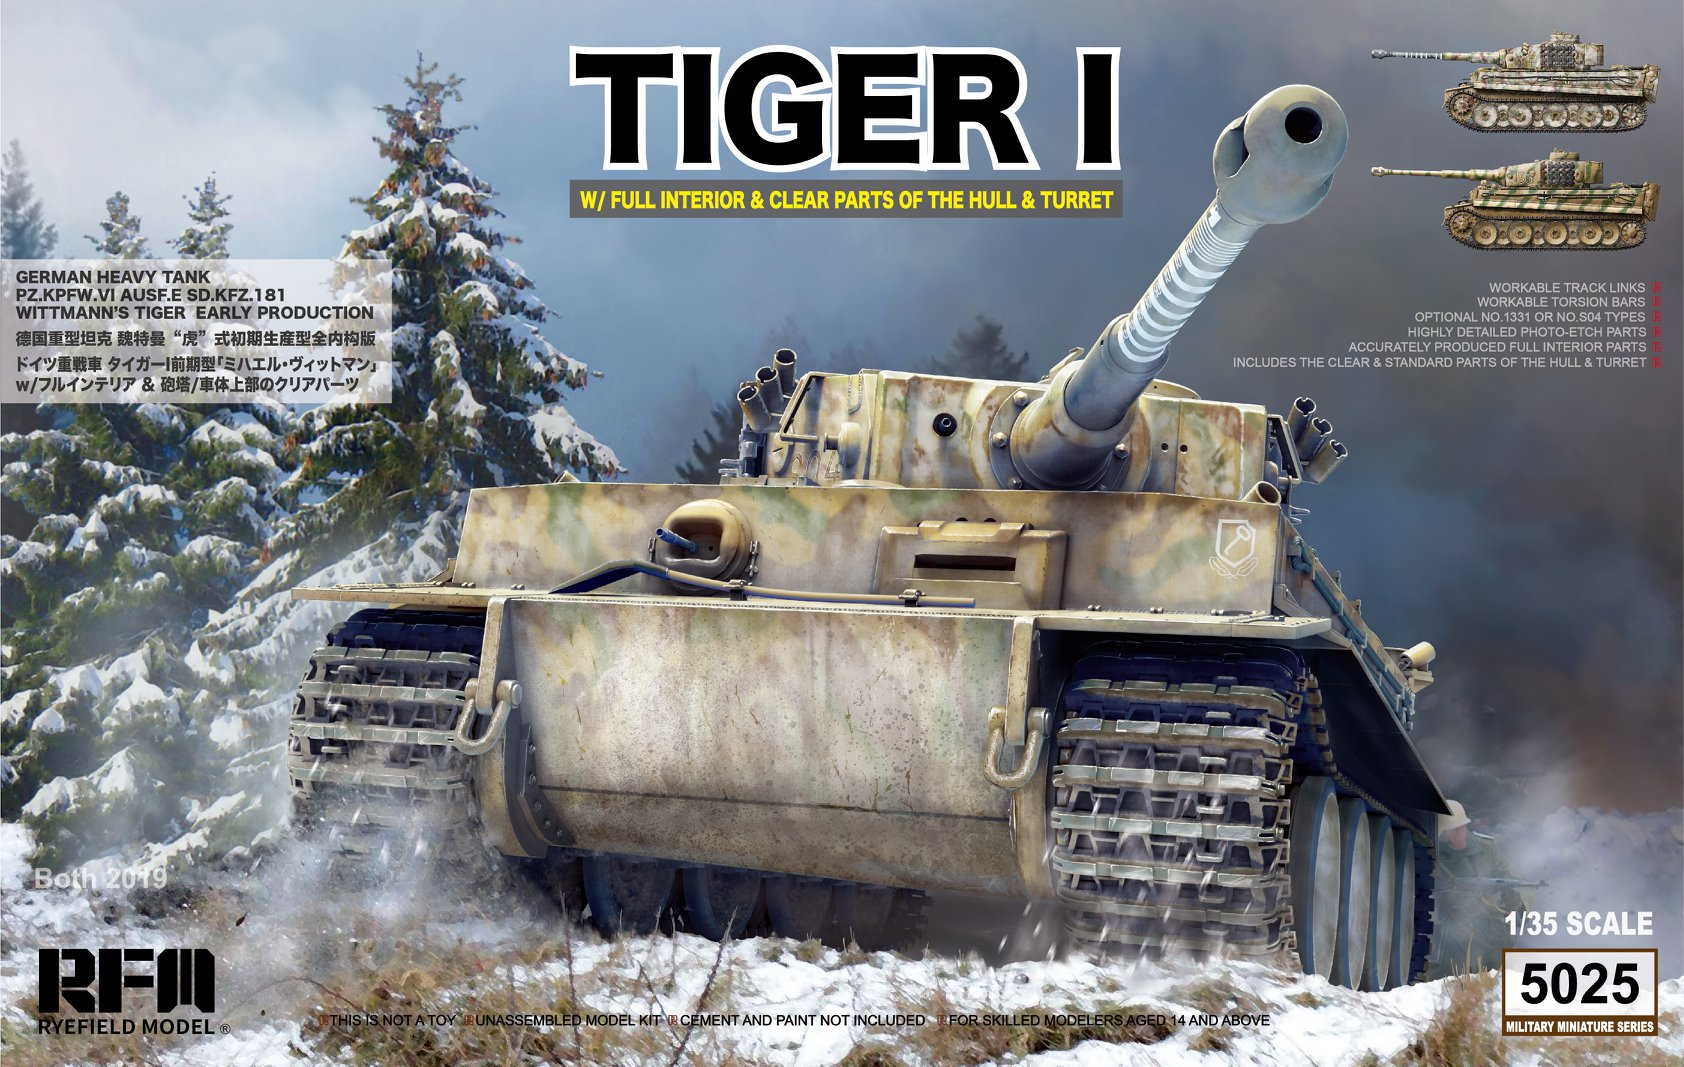 RYEFIELD MODEL # 5025 1-35 TIGER I WITH FULL INTERIOR. CLEAR HULL & TURRET PARTS.jpg